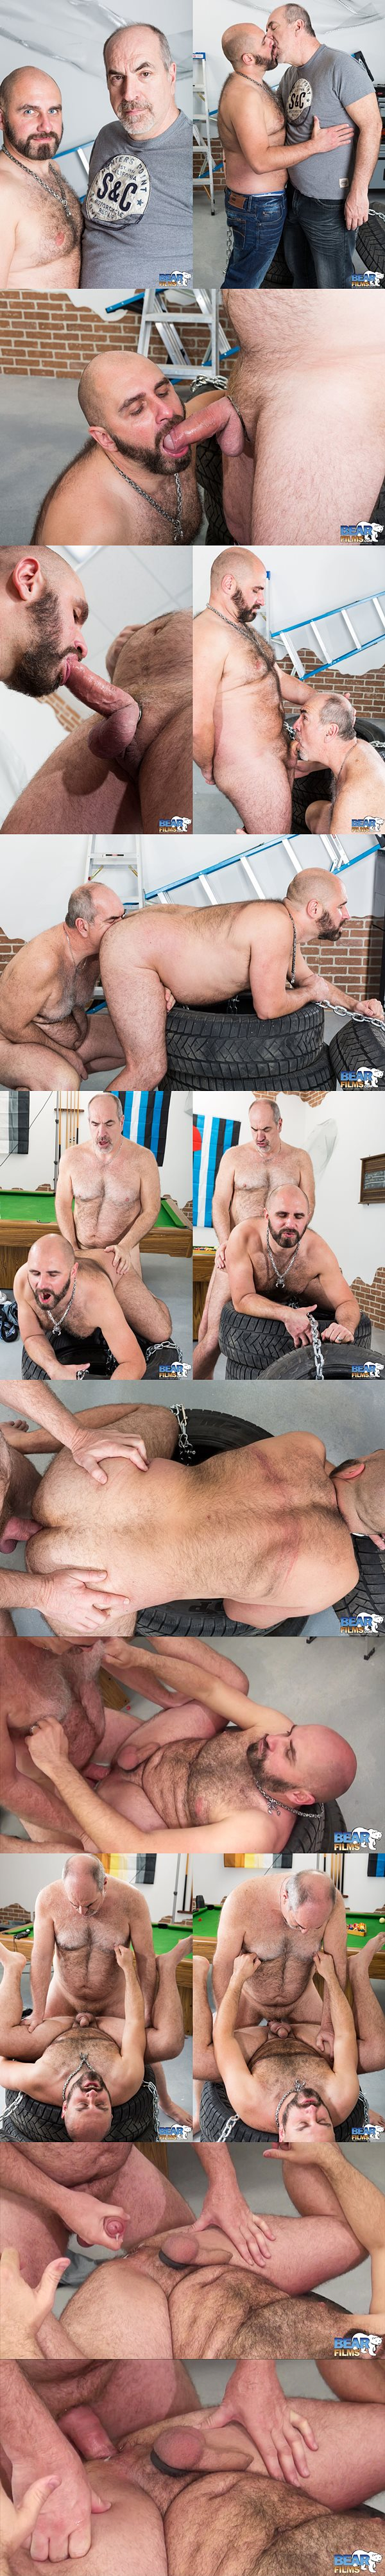 Martin Pe barebacks and breeds hot muscle bear Vince Stewart's tight ass at Bearfilms 02